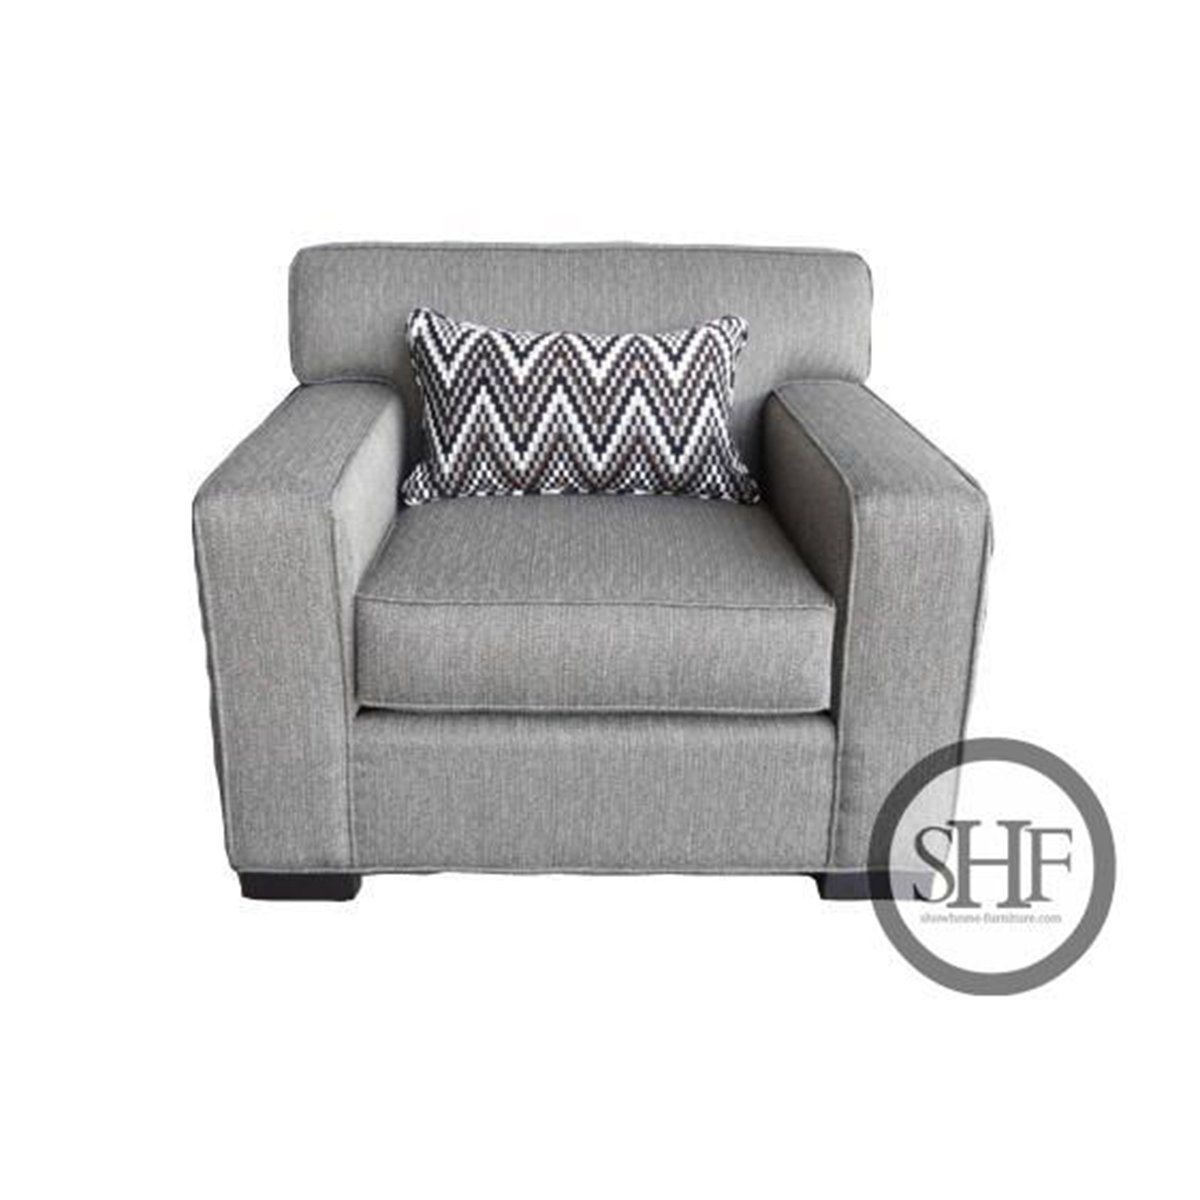 Arsenio Chair - Showhome Furniture